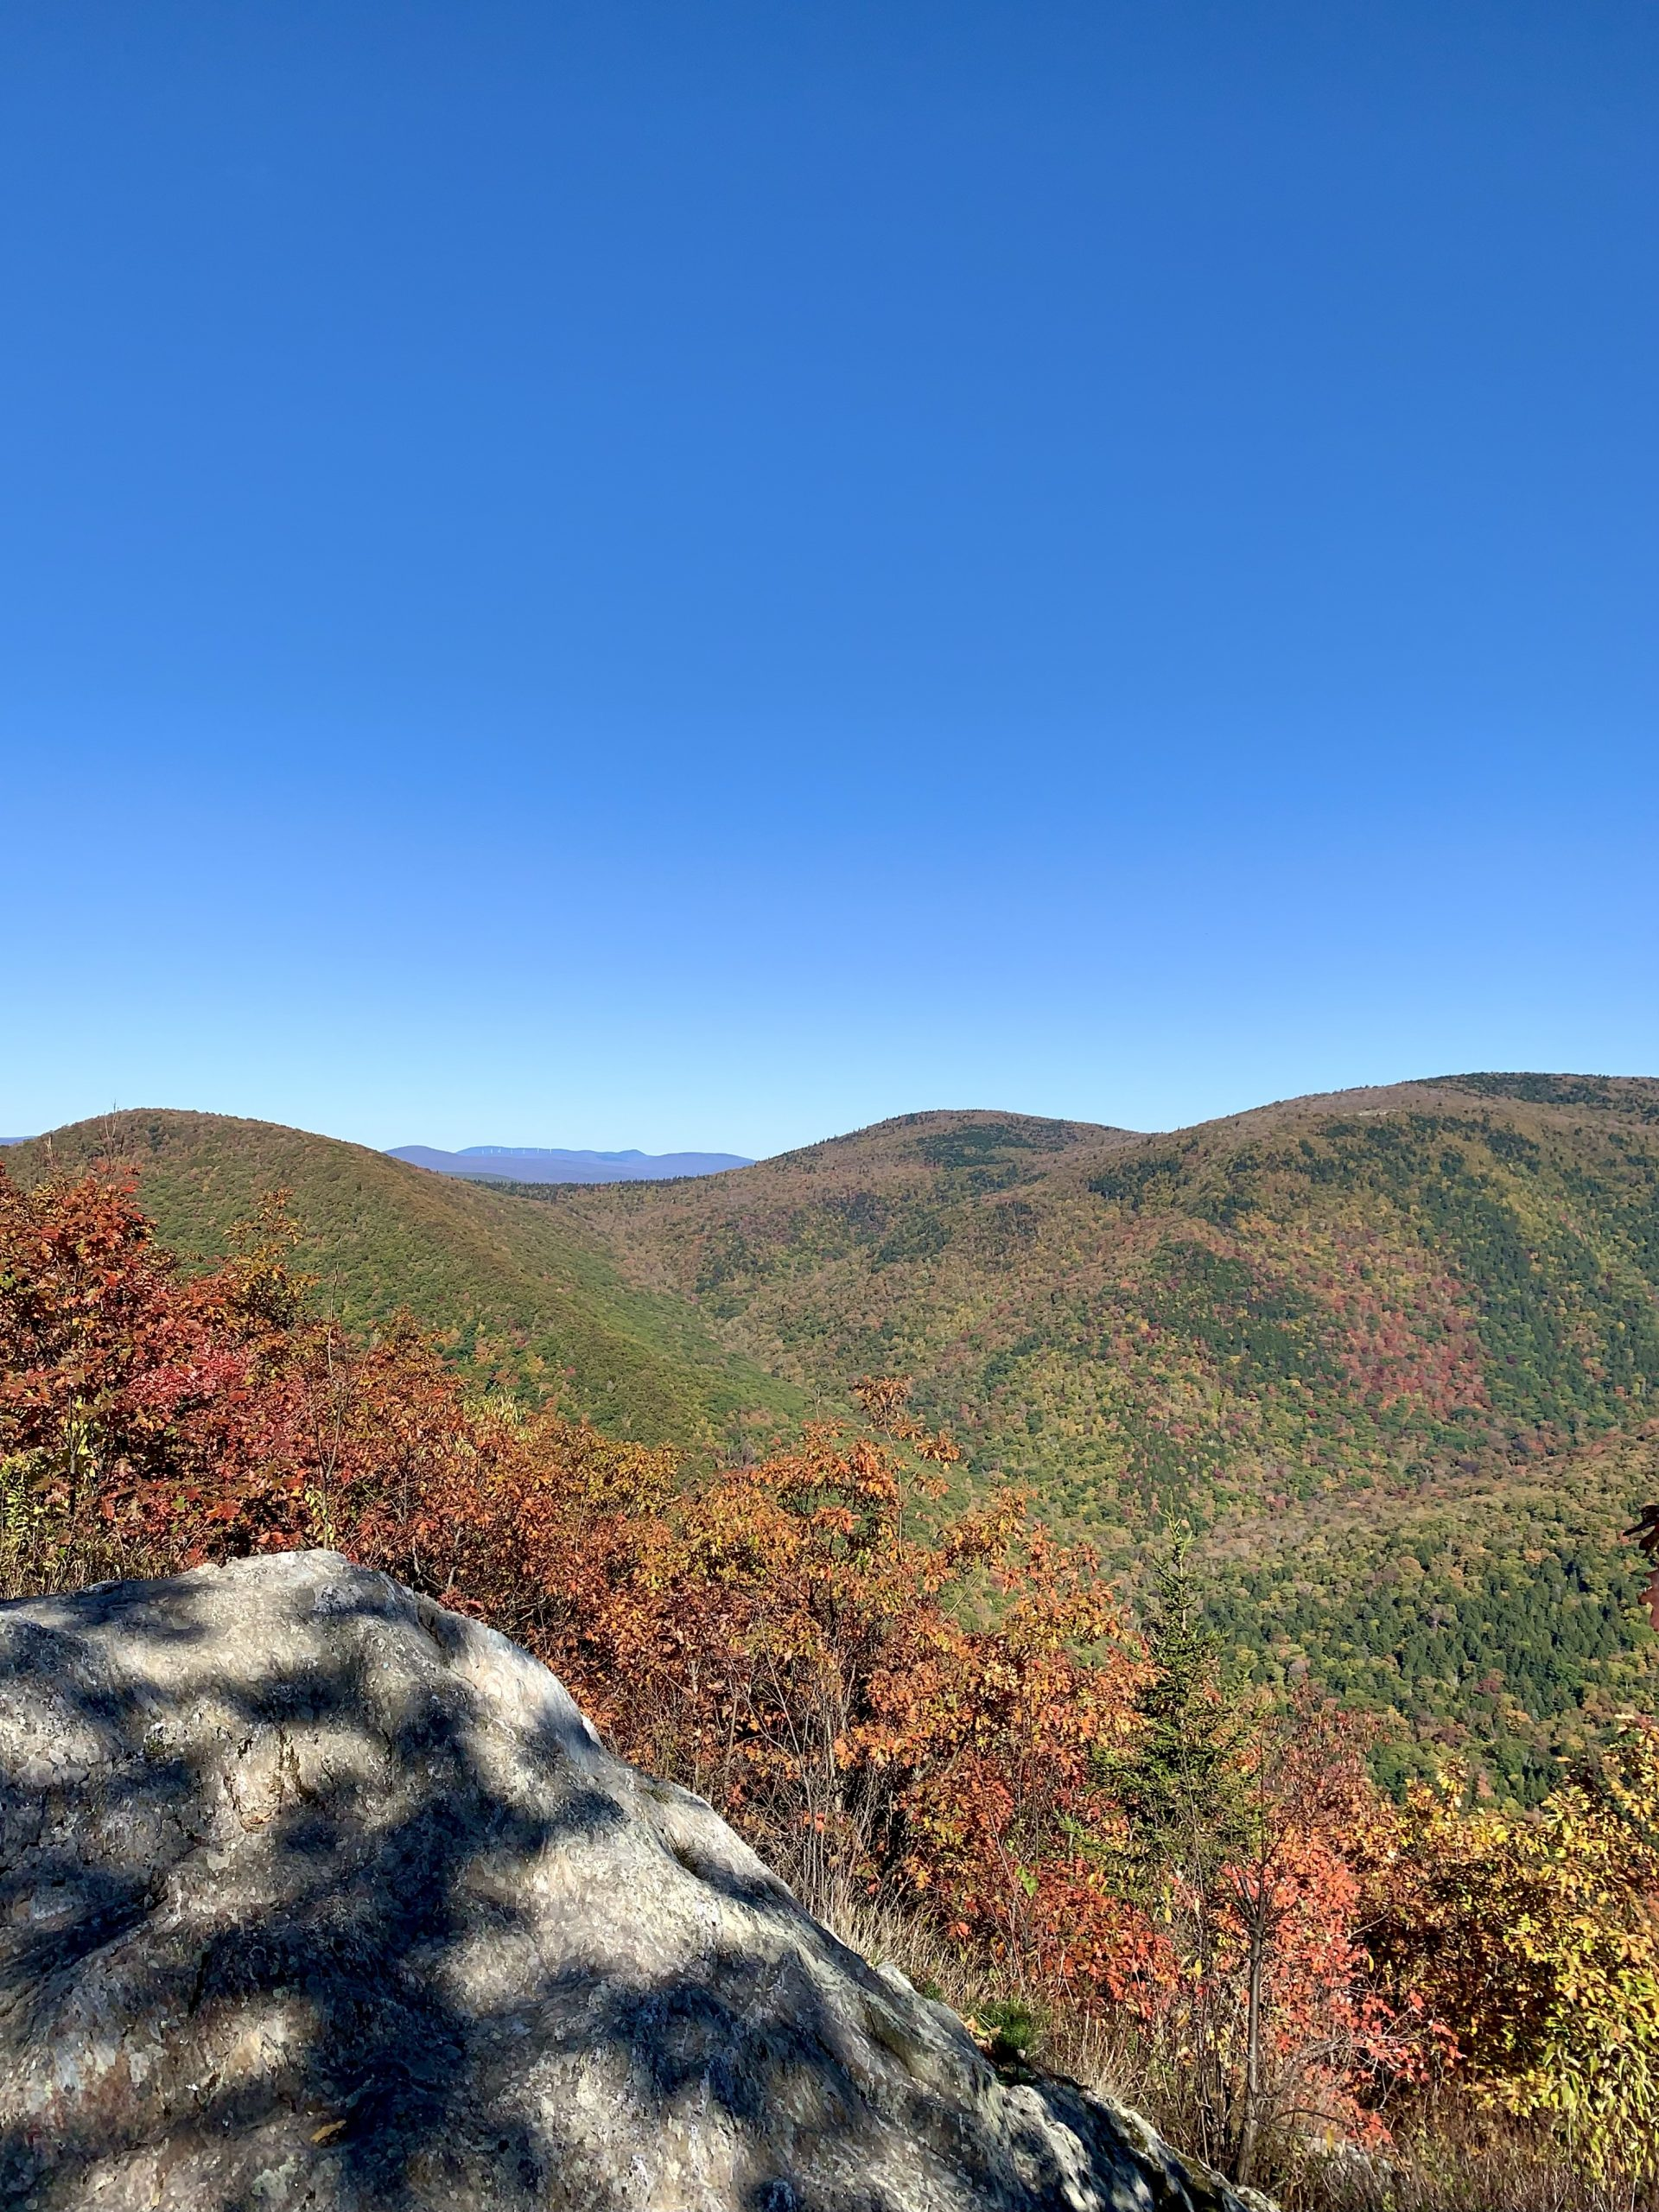 photo of a fall foliage scene with mountains and blue sky